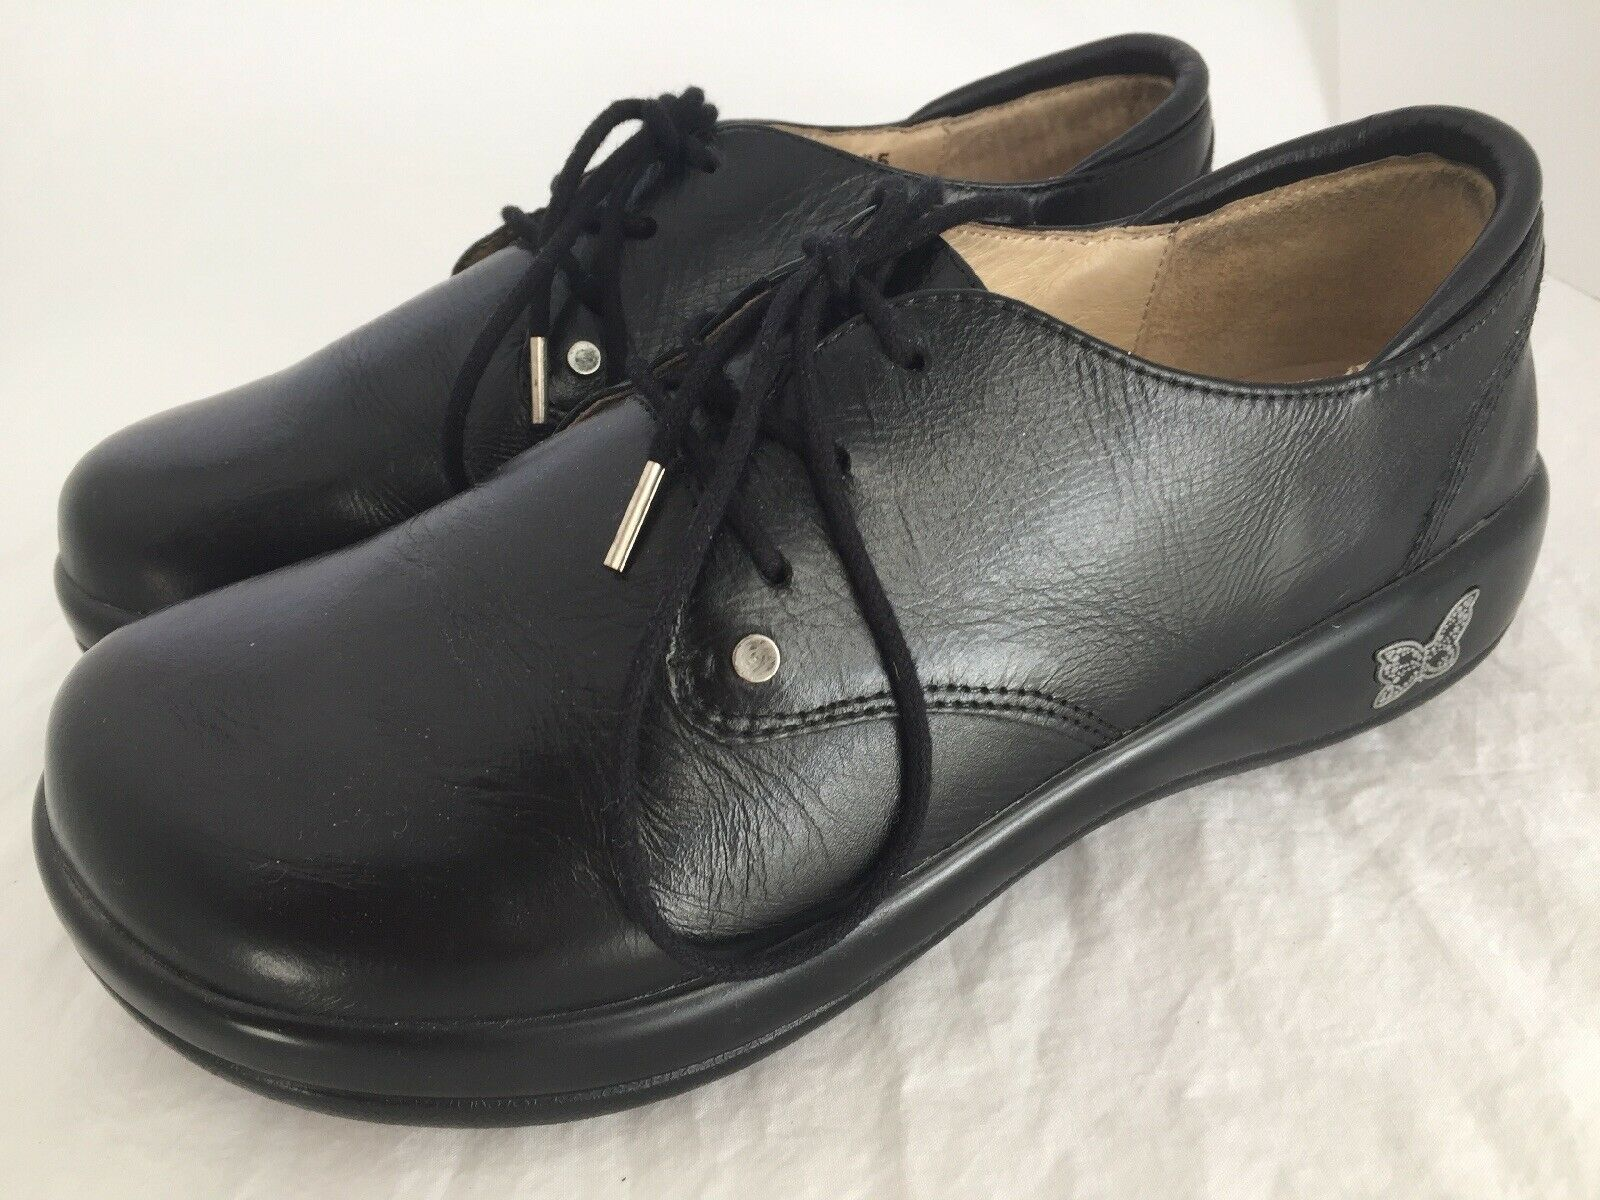 ALEGRIA Kory Black Leather Lace Up Oxfords shoes Women's Size 35